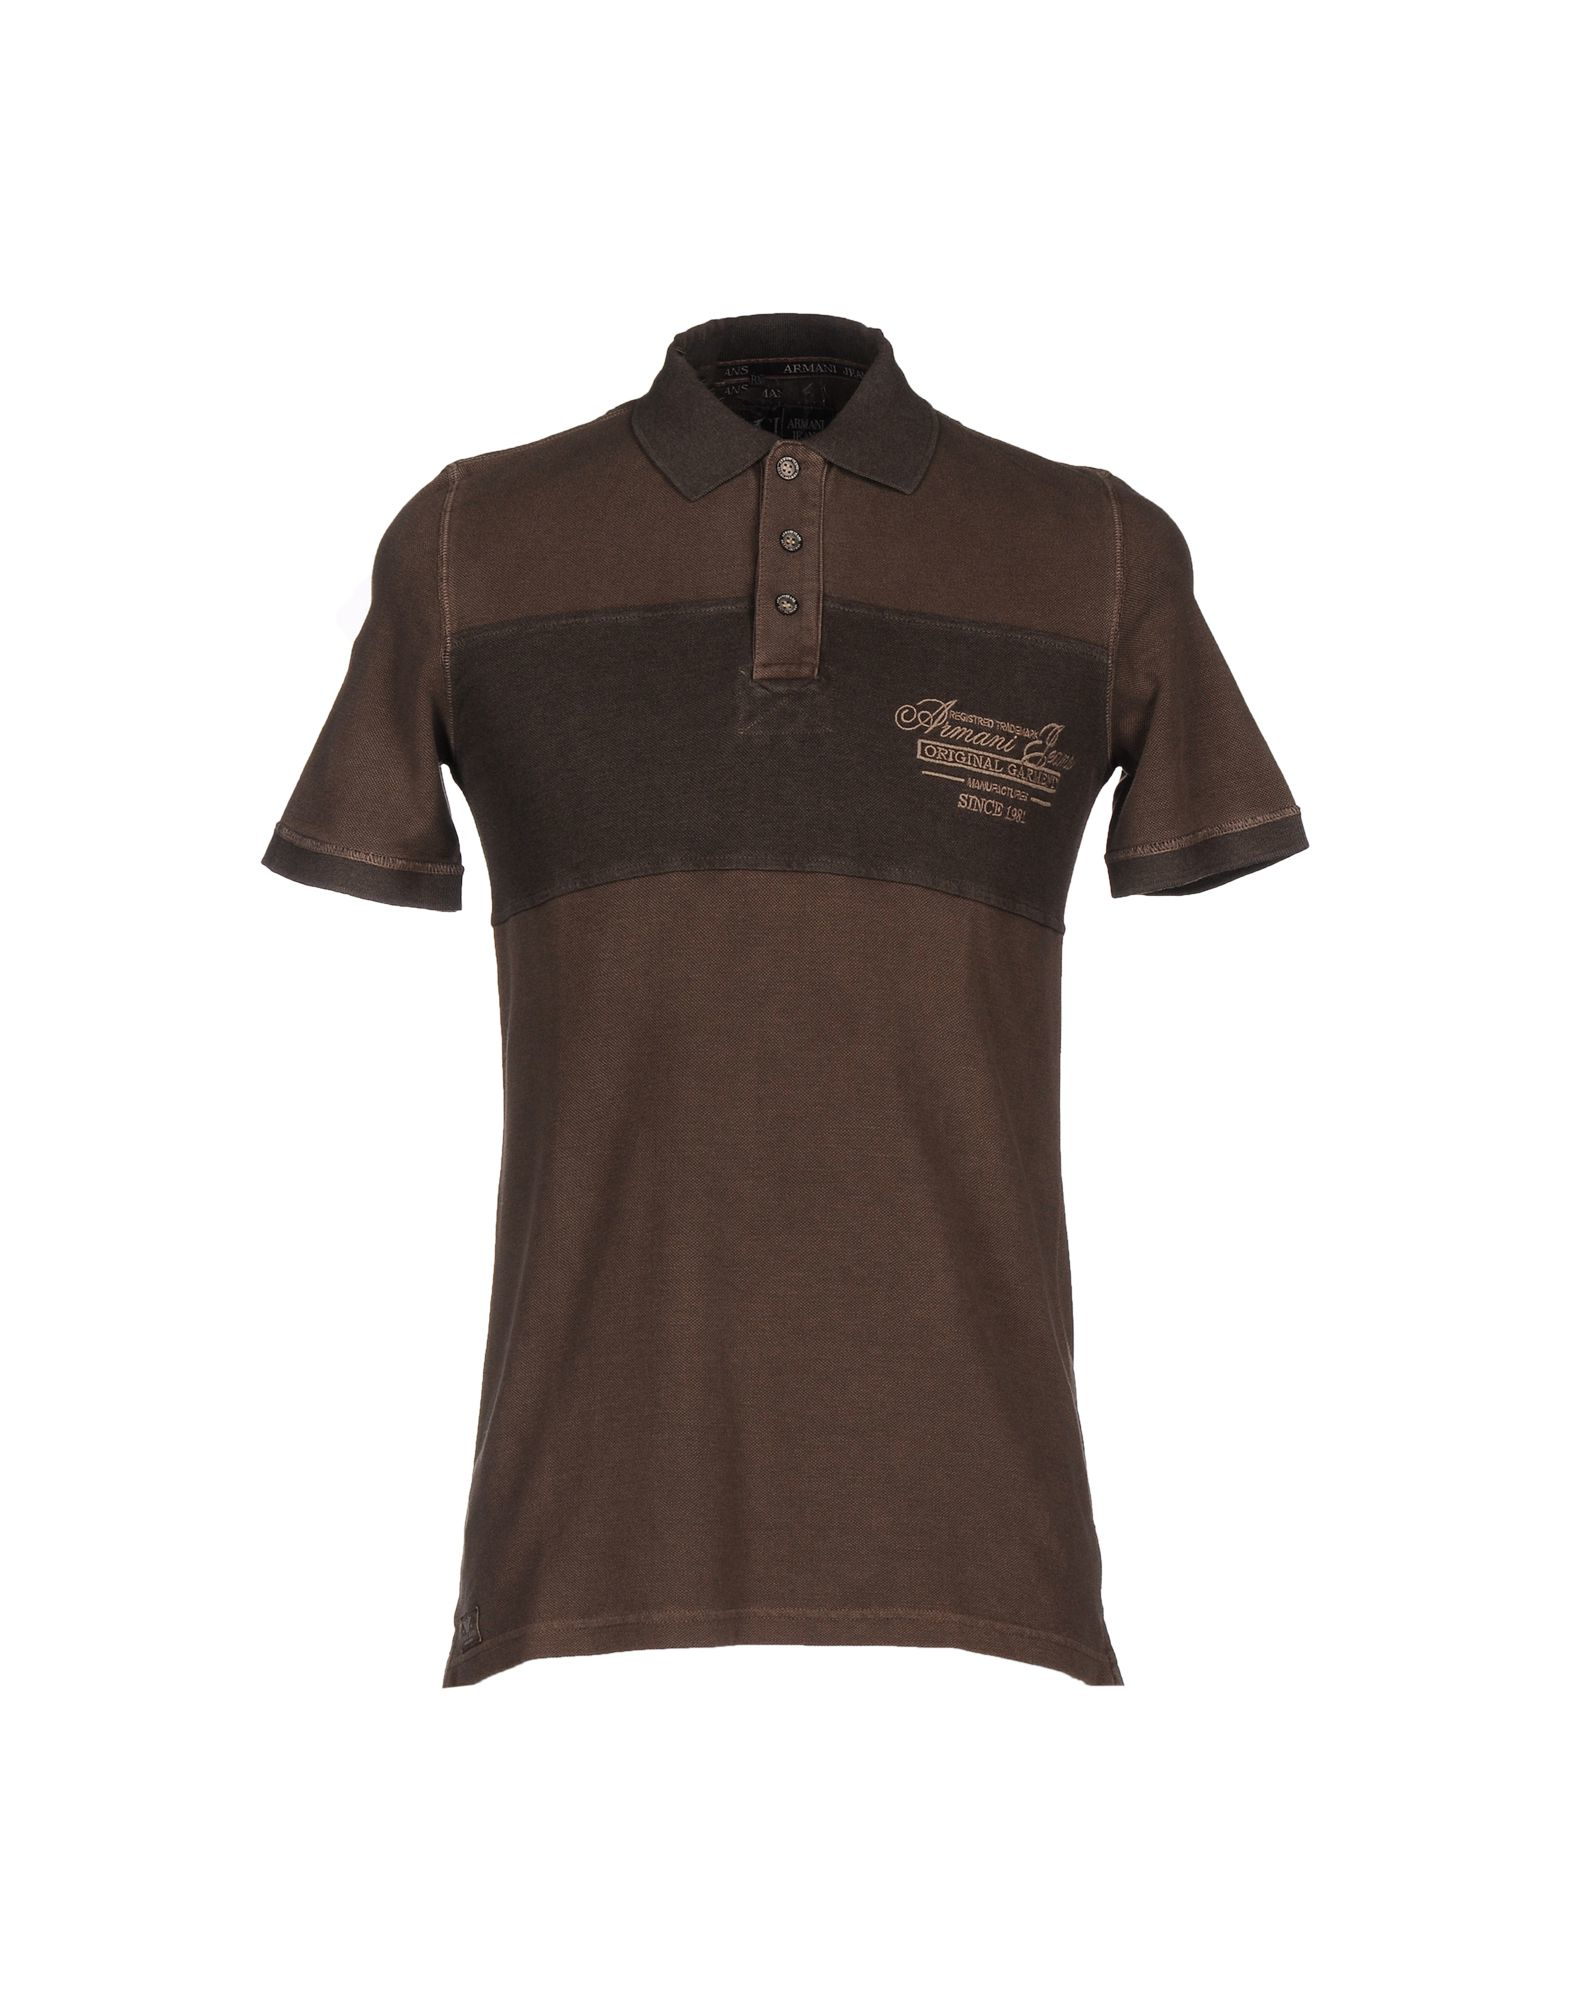 Armani Jeans Polo Shirt In Brown For Men Lyst